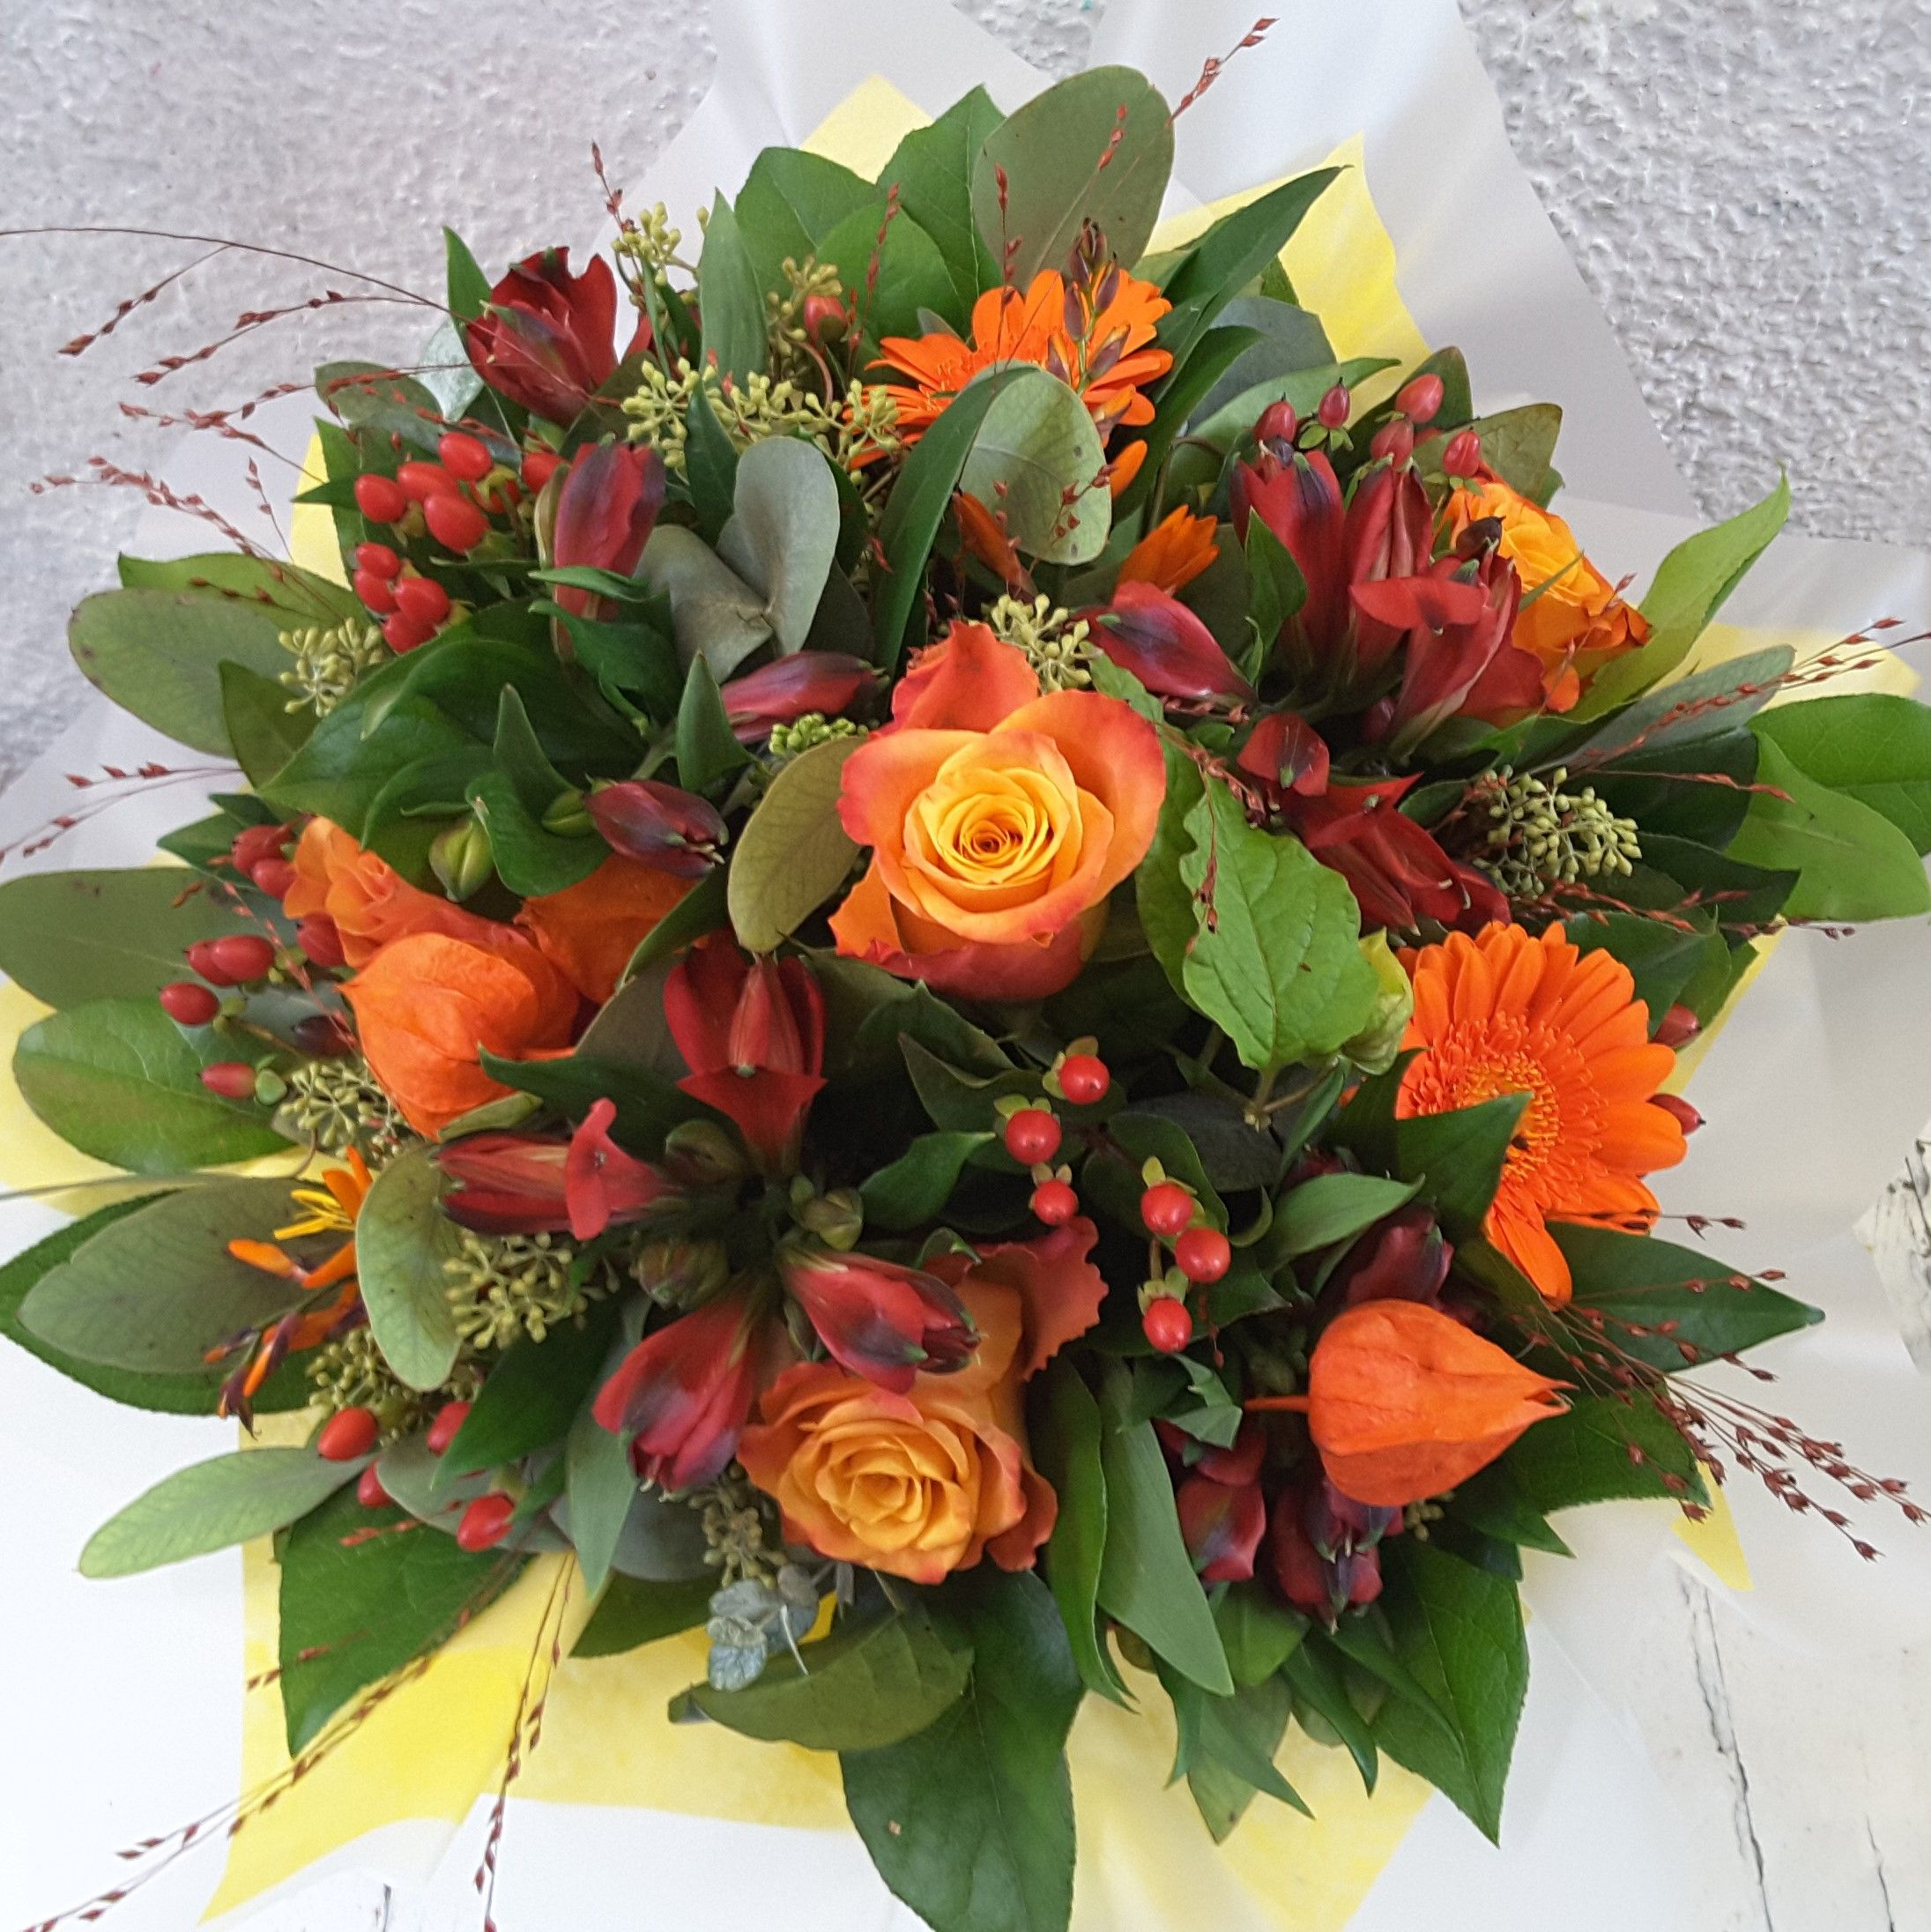 A Bright Handtied Bouquet Of Orange Flowers Seasonal Berries And